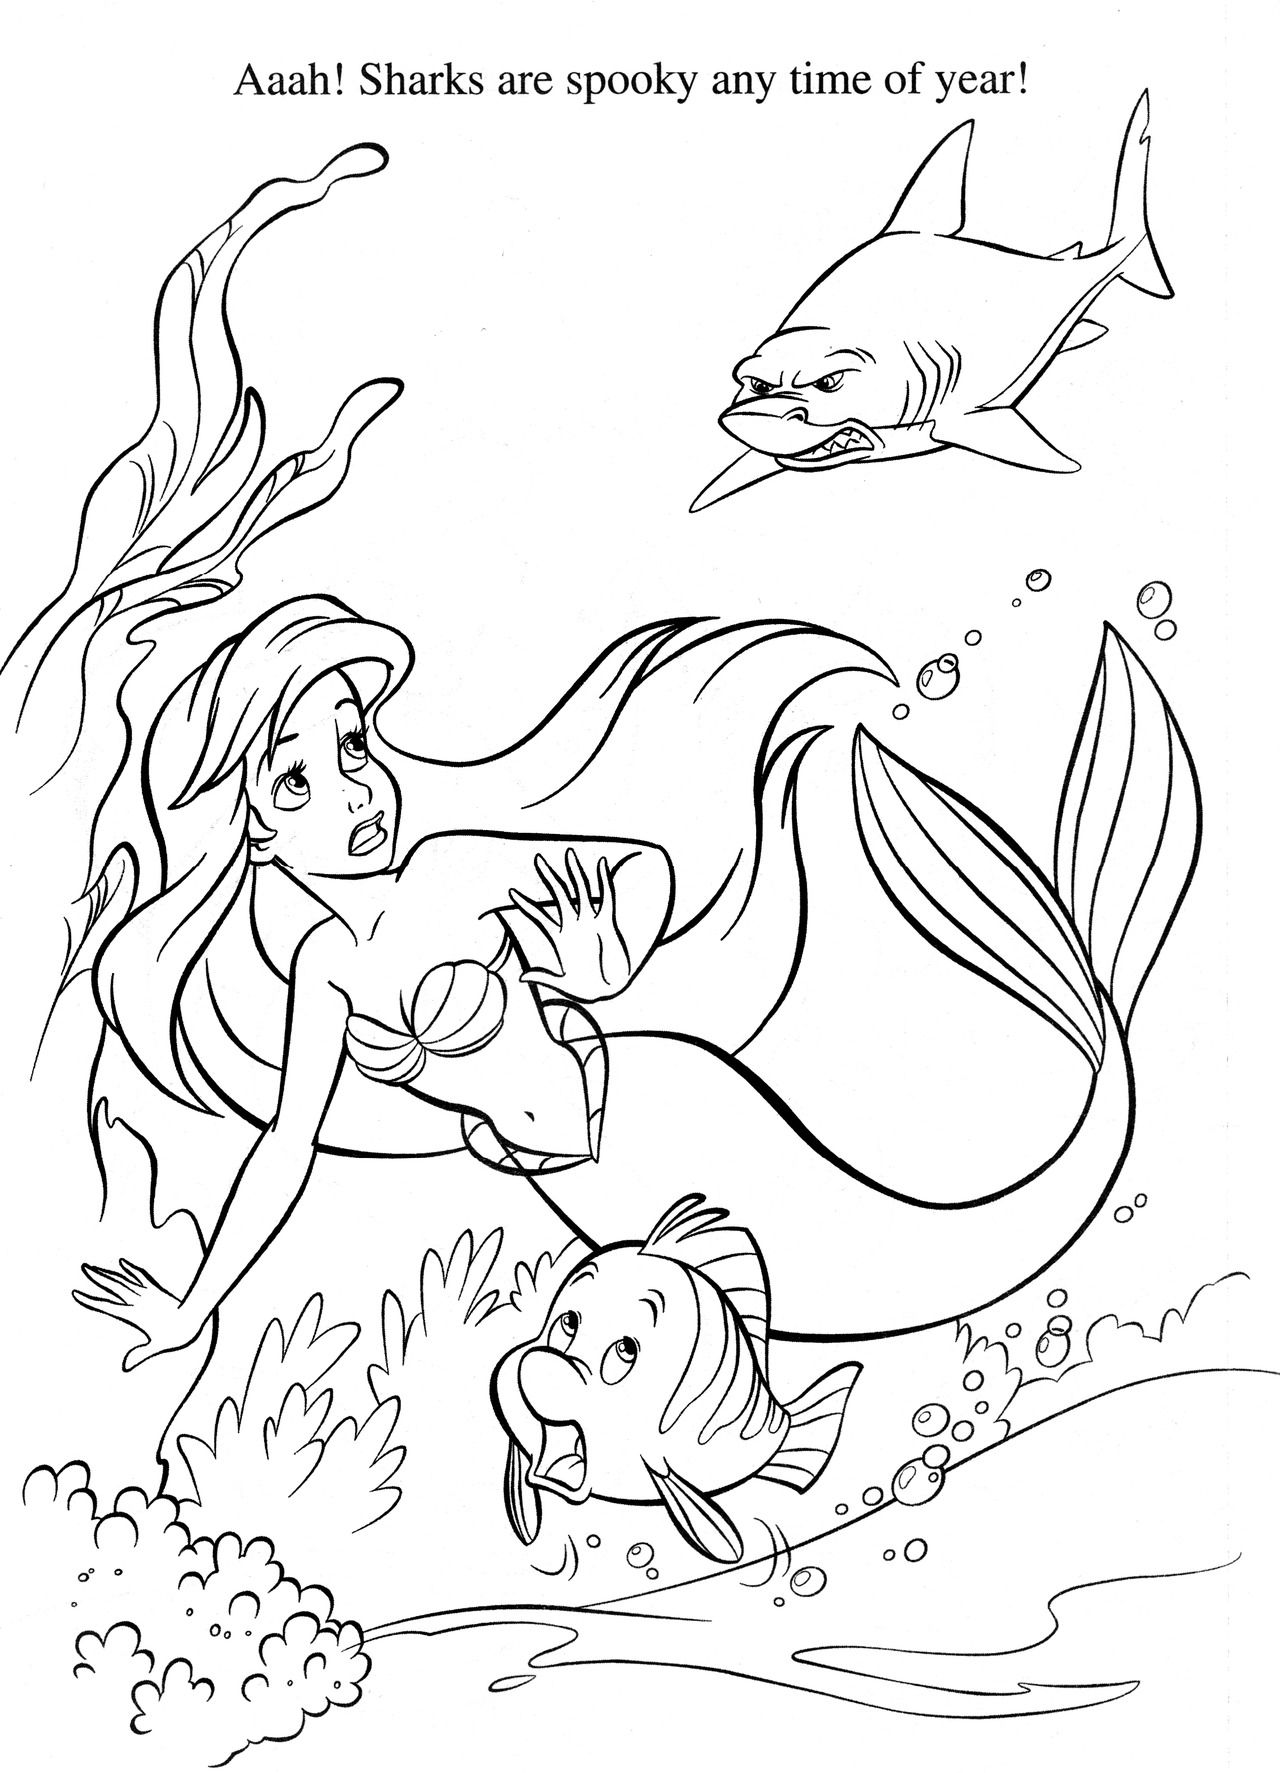 Mermaid Coloring Pages Ariel Coloring Page Ariel Coloring Pages Disney Coloring Pages Shark Coloring Pages